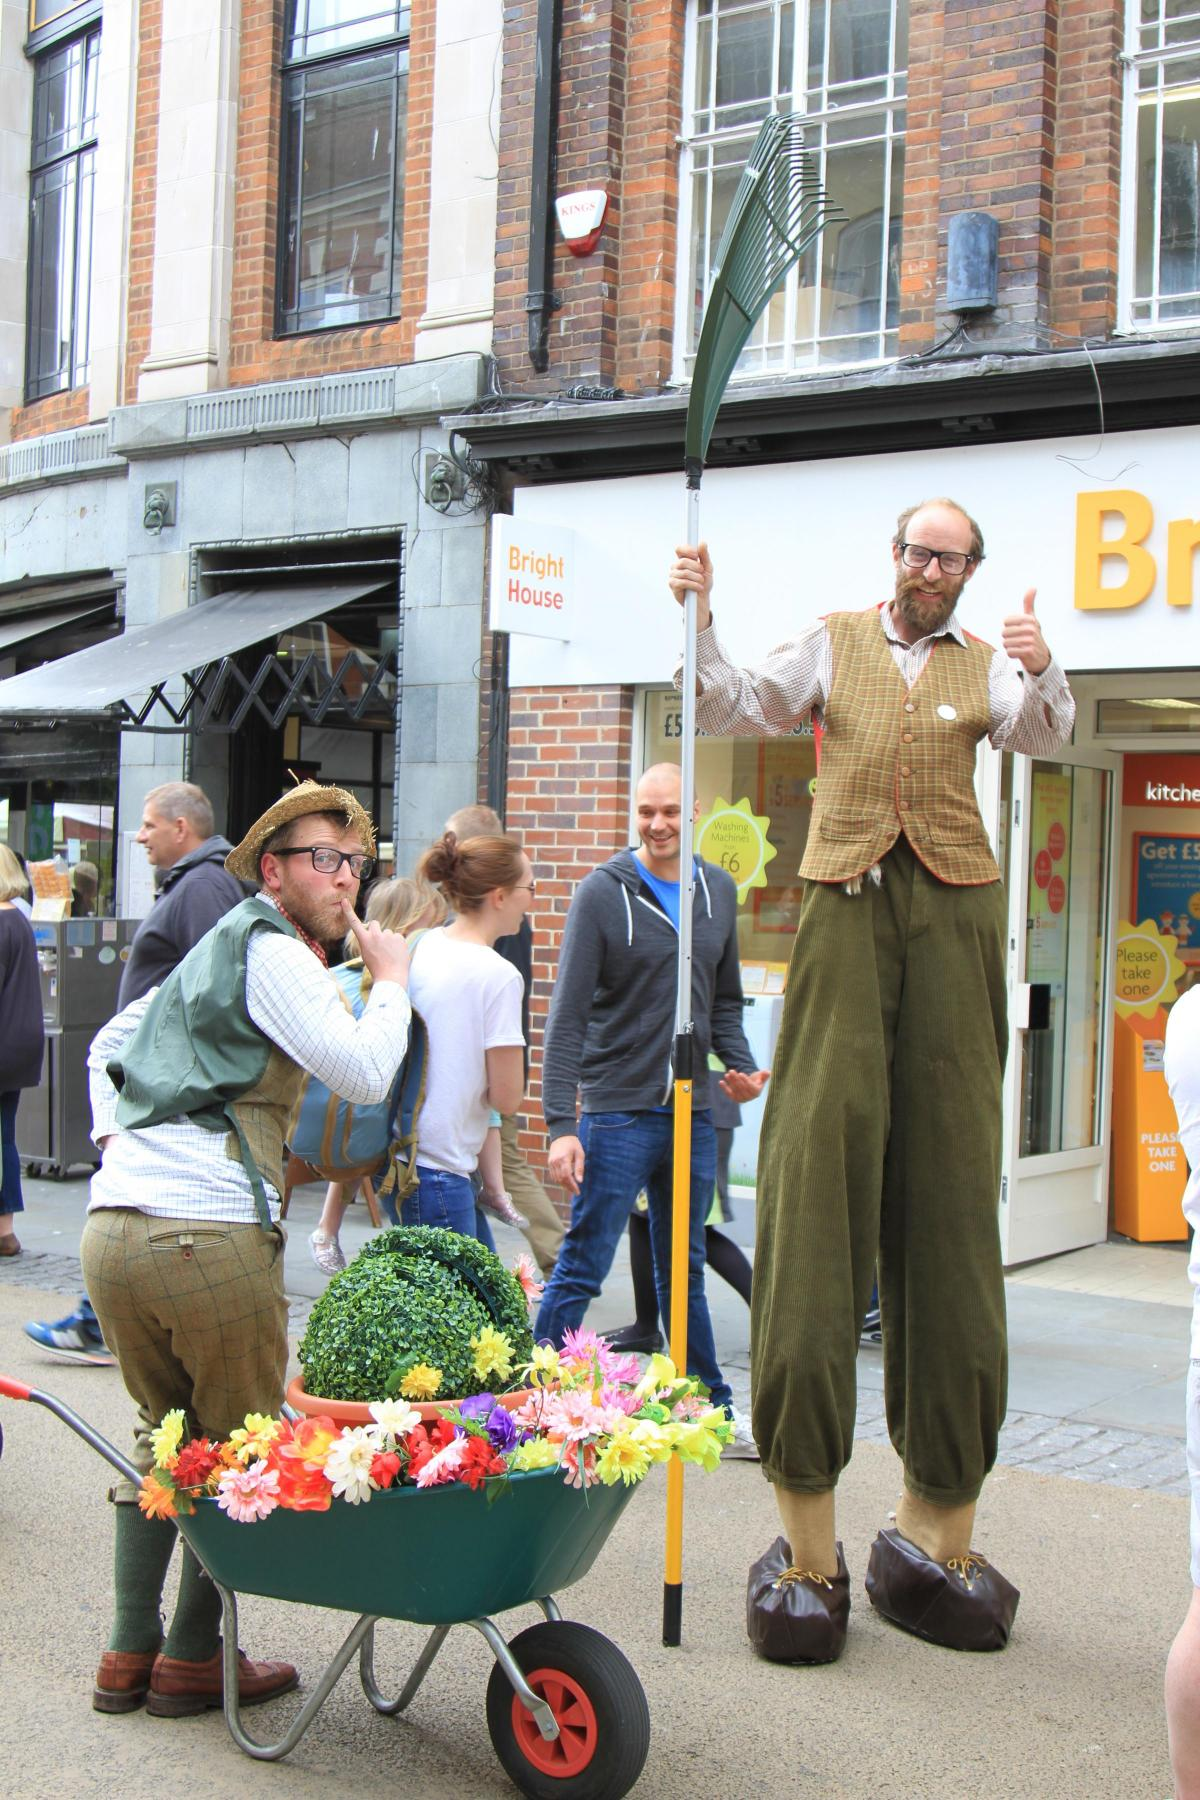 Worcester Bids Worcester Foodie Festival Heading For The